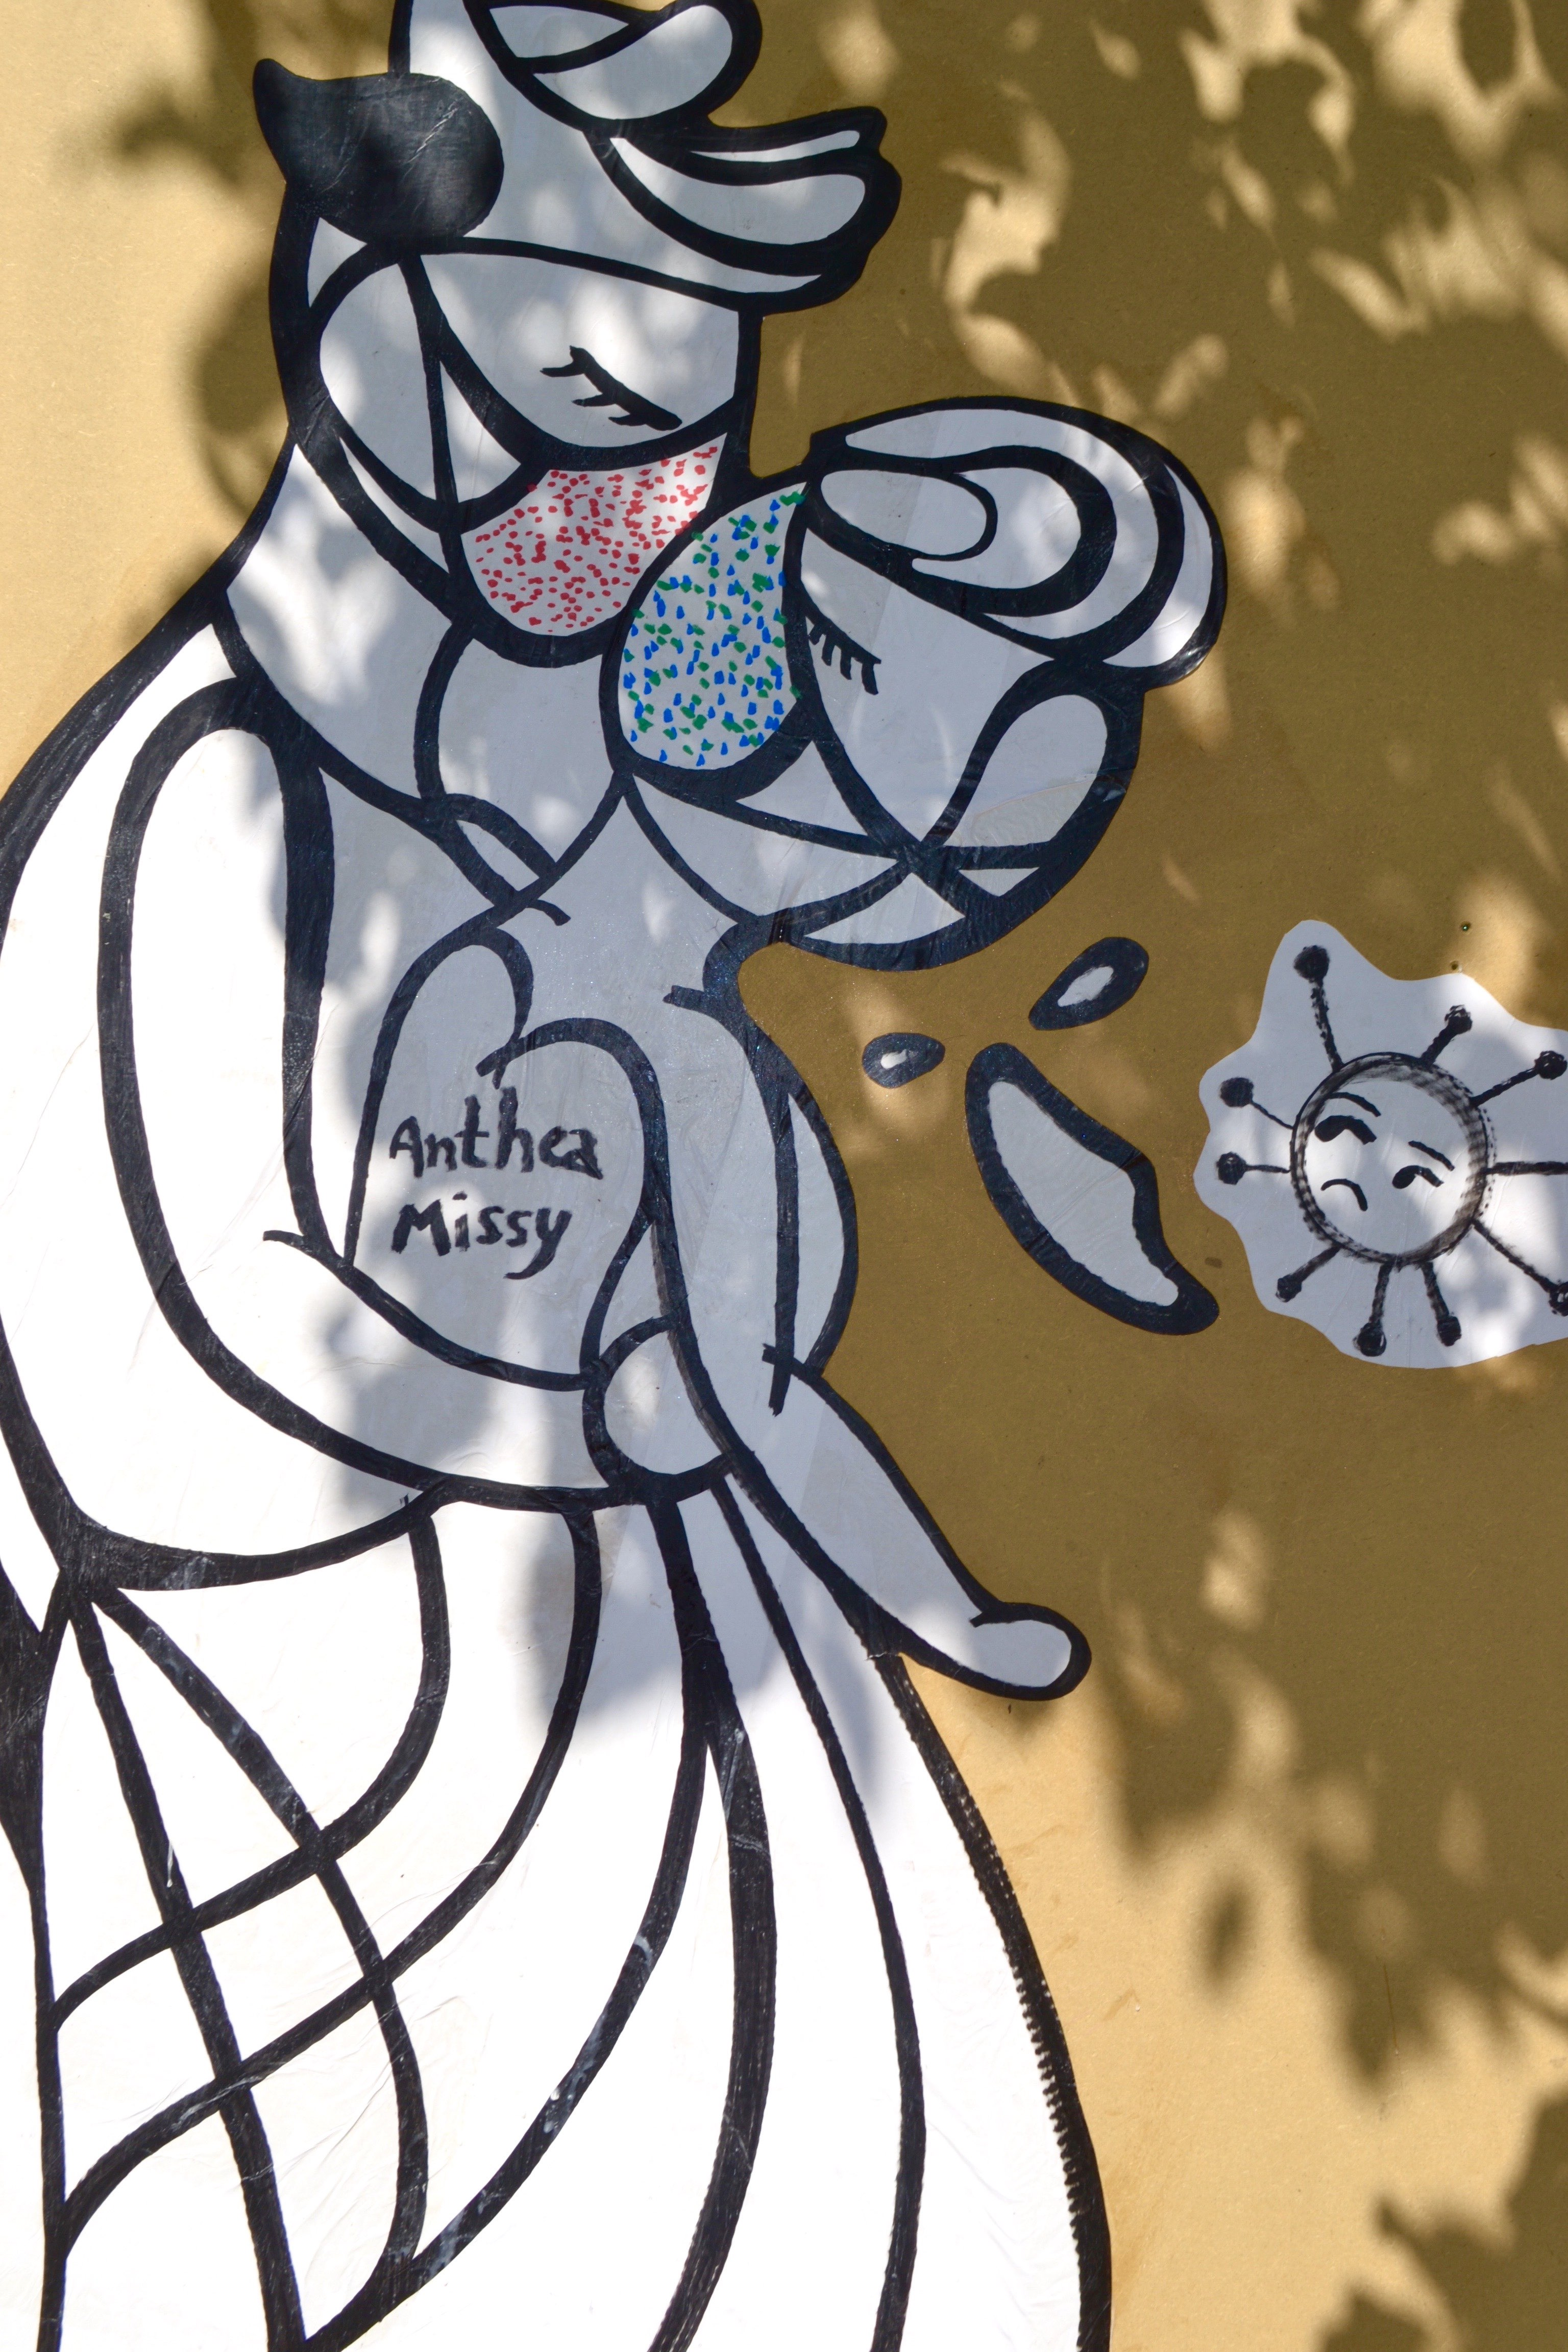 Anthea Missy - Protect Me From Danger - Paste Up 1.jpg